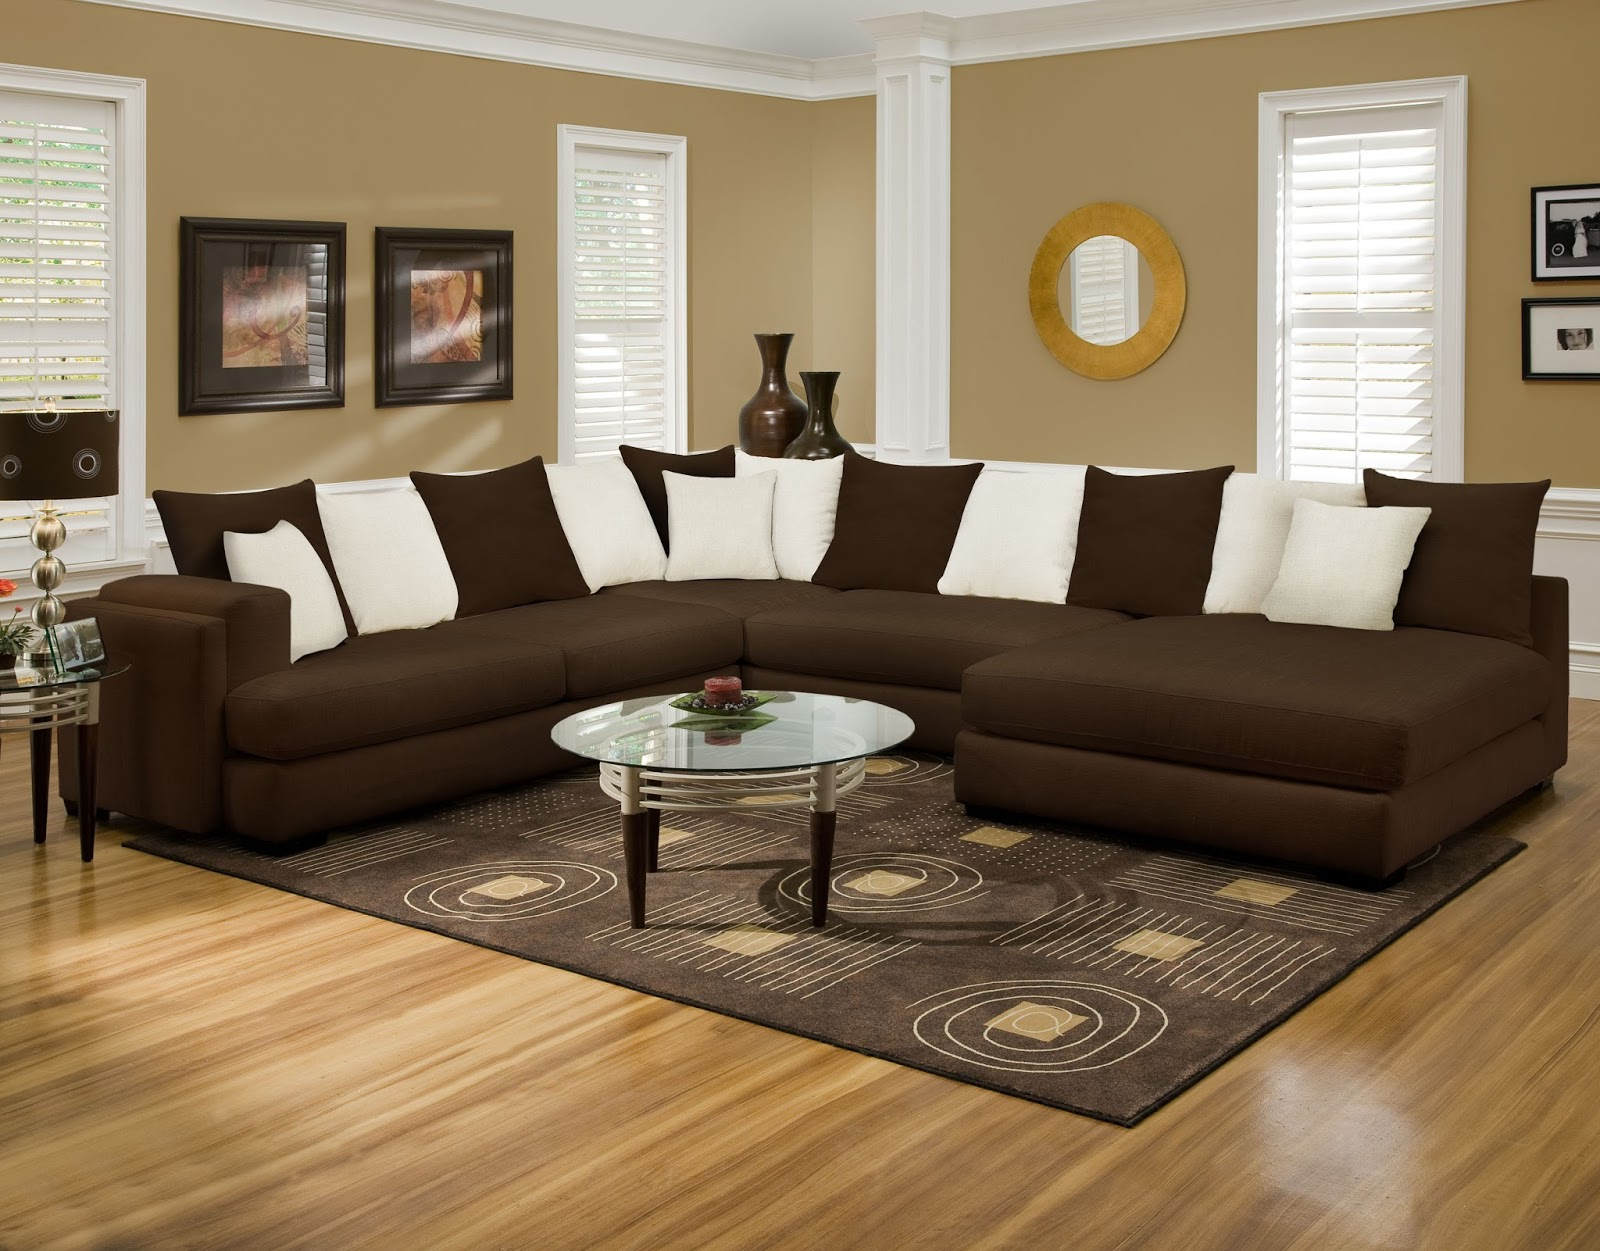 Albany Industries Sectional Sofa